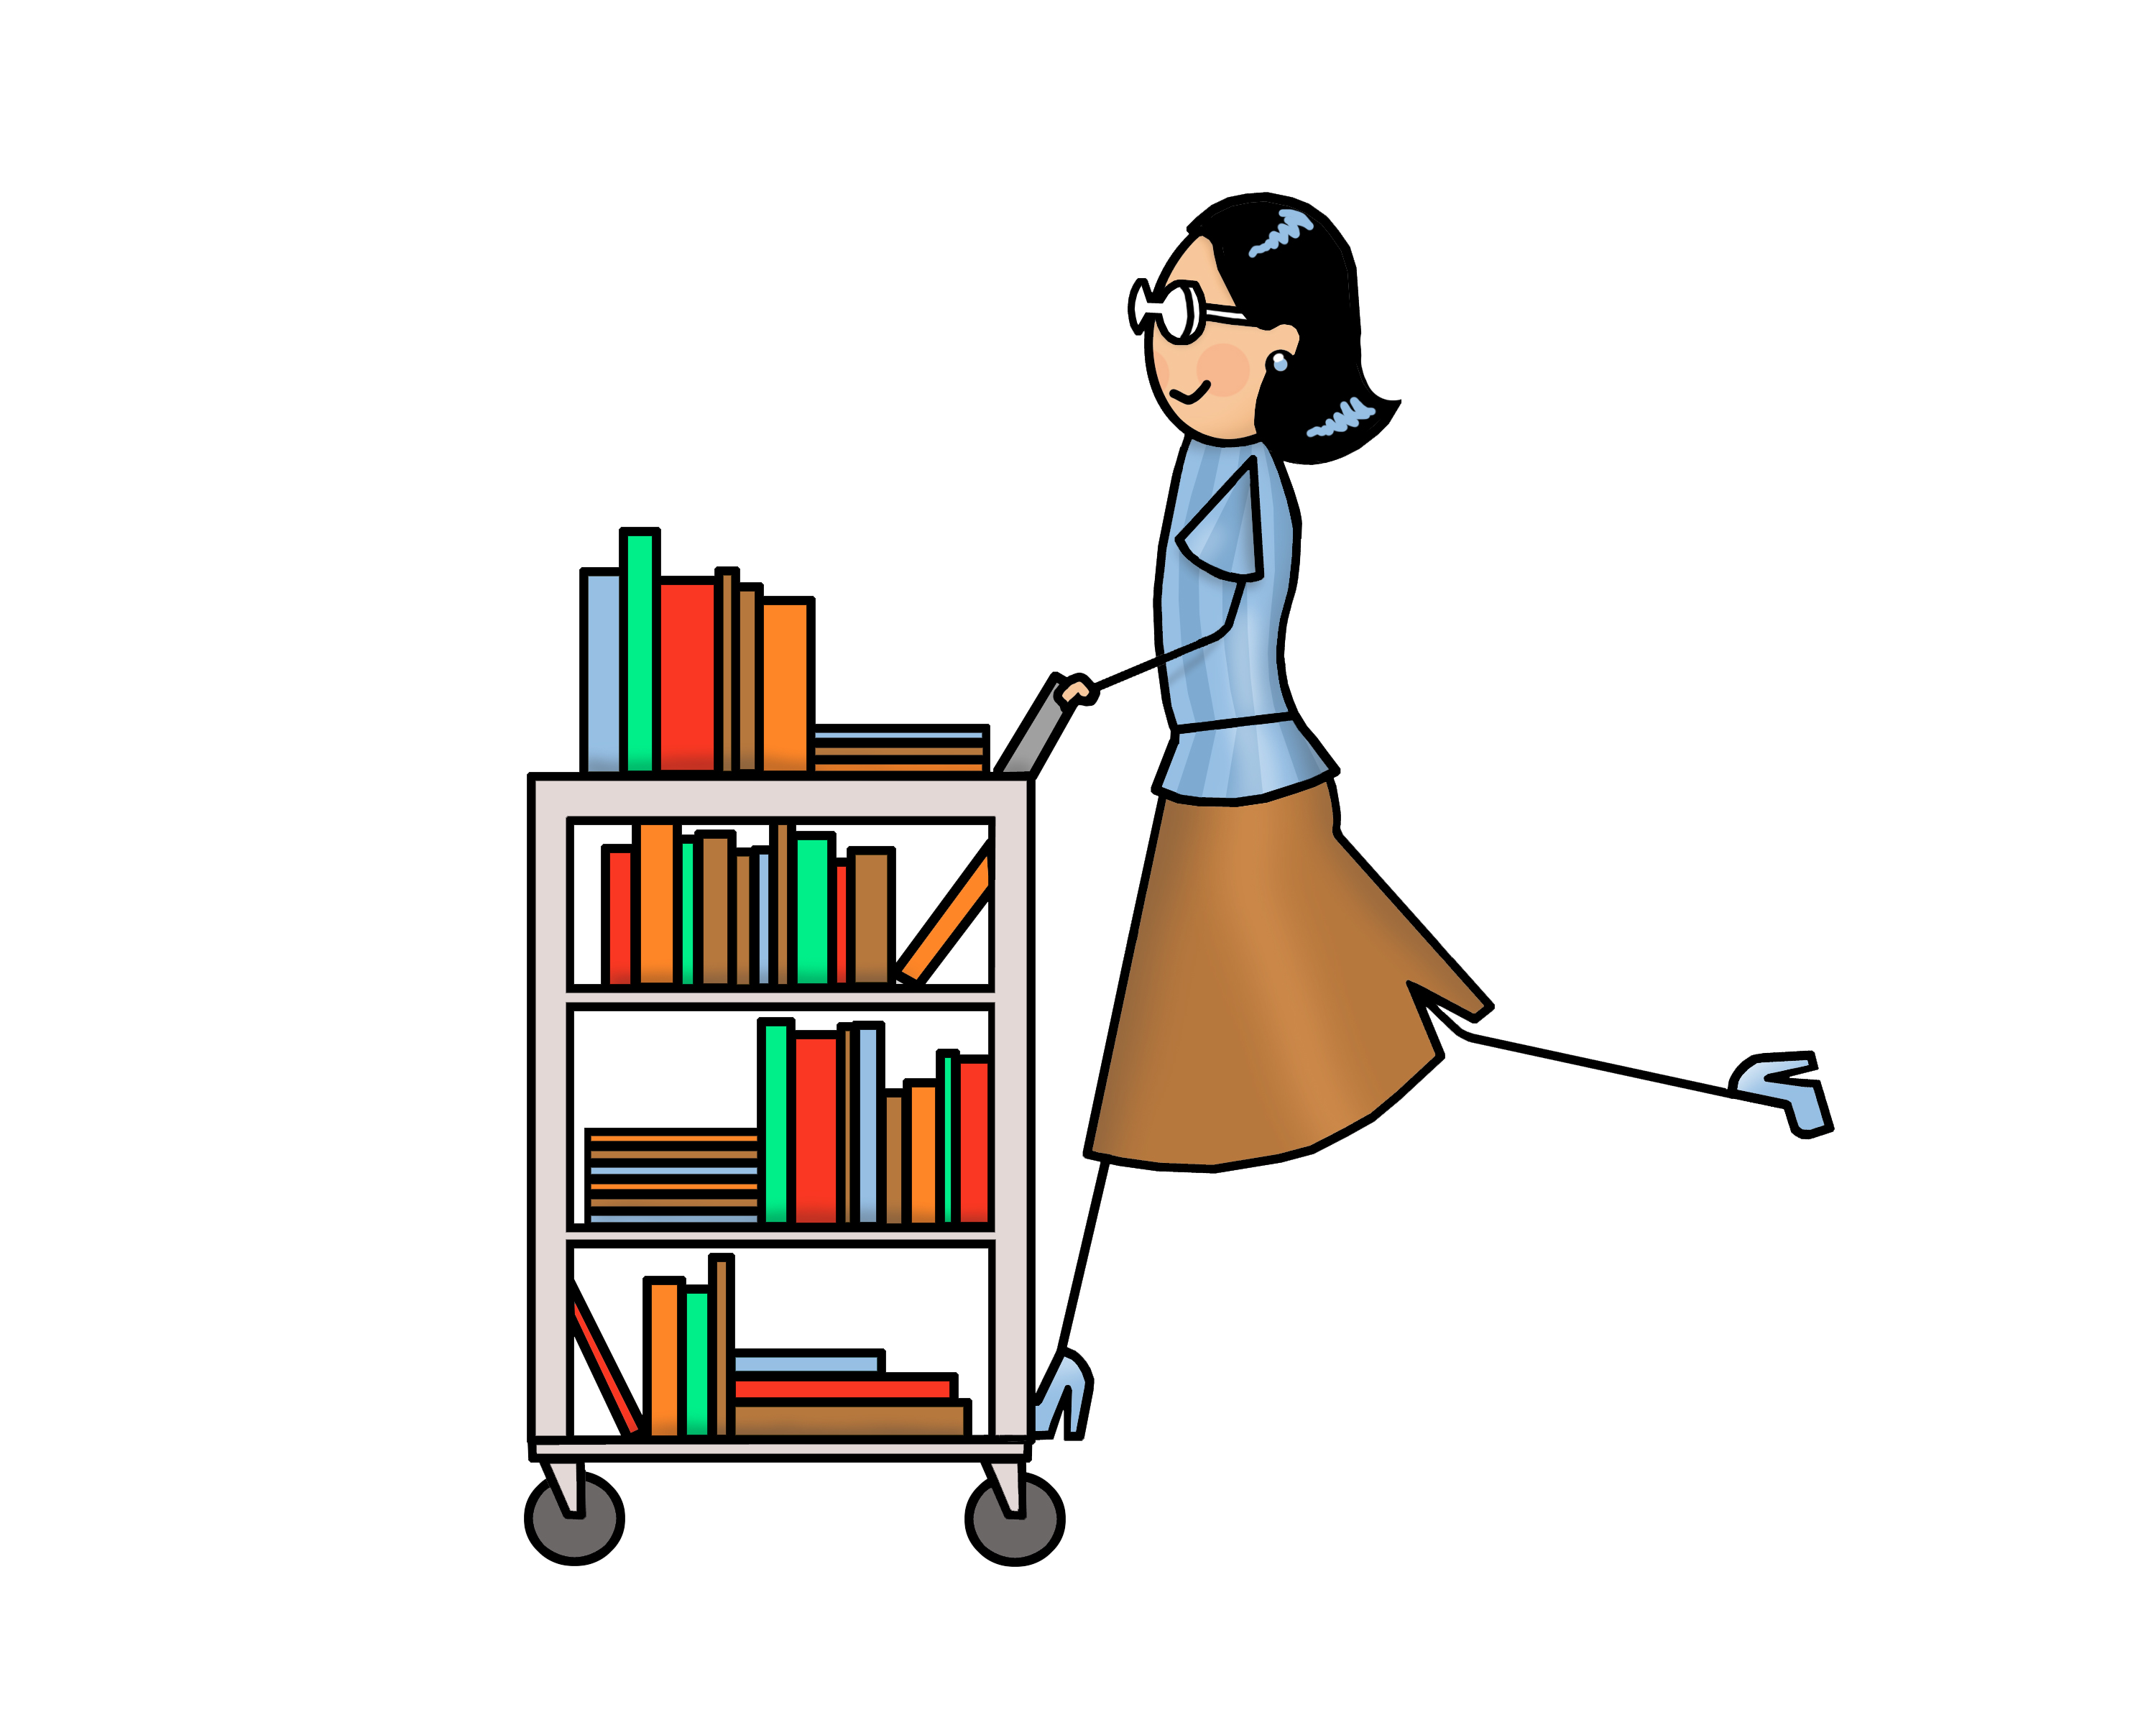 Library clipart cart 10102 105) cart (ZF PNG